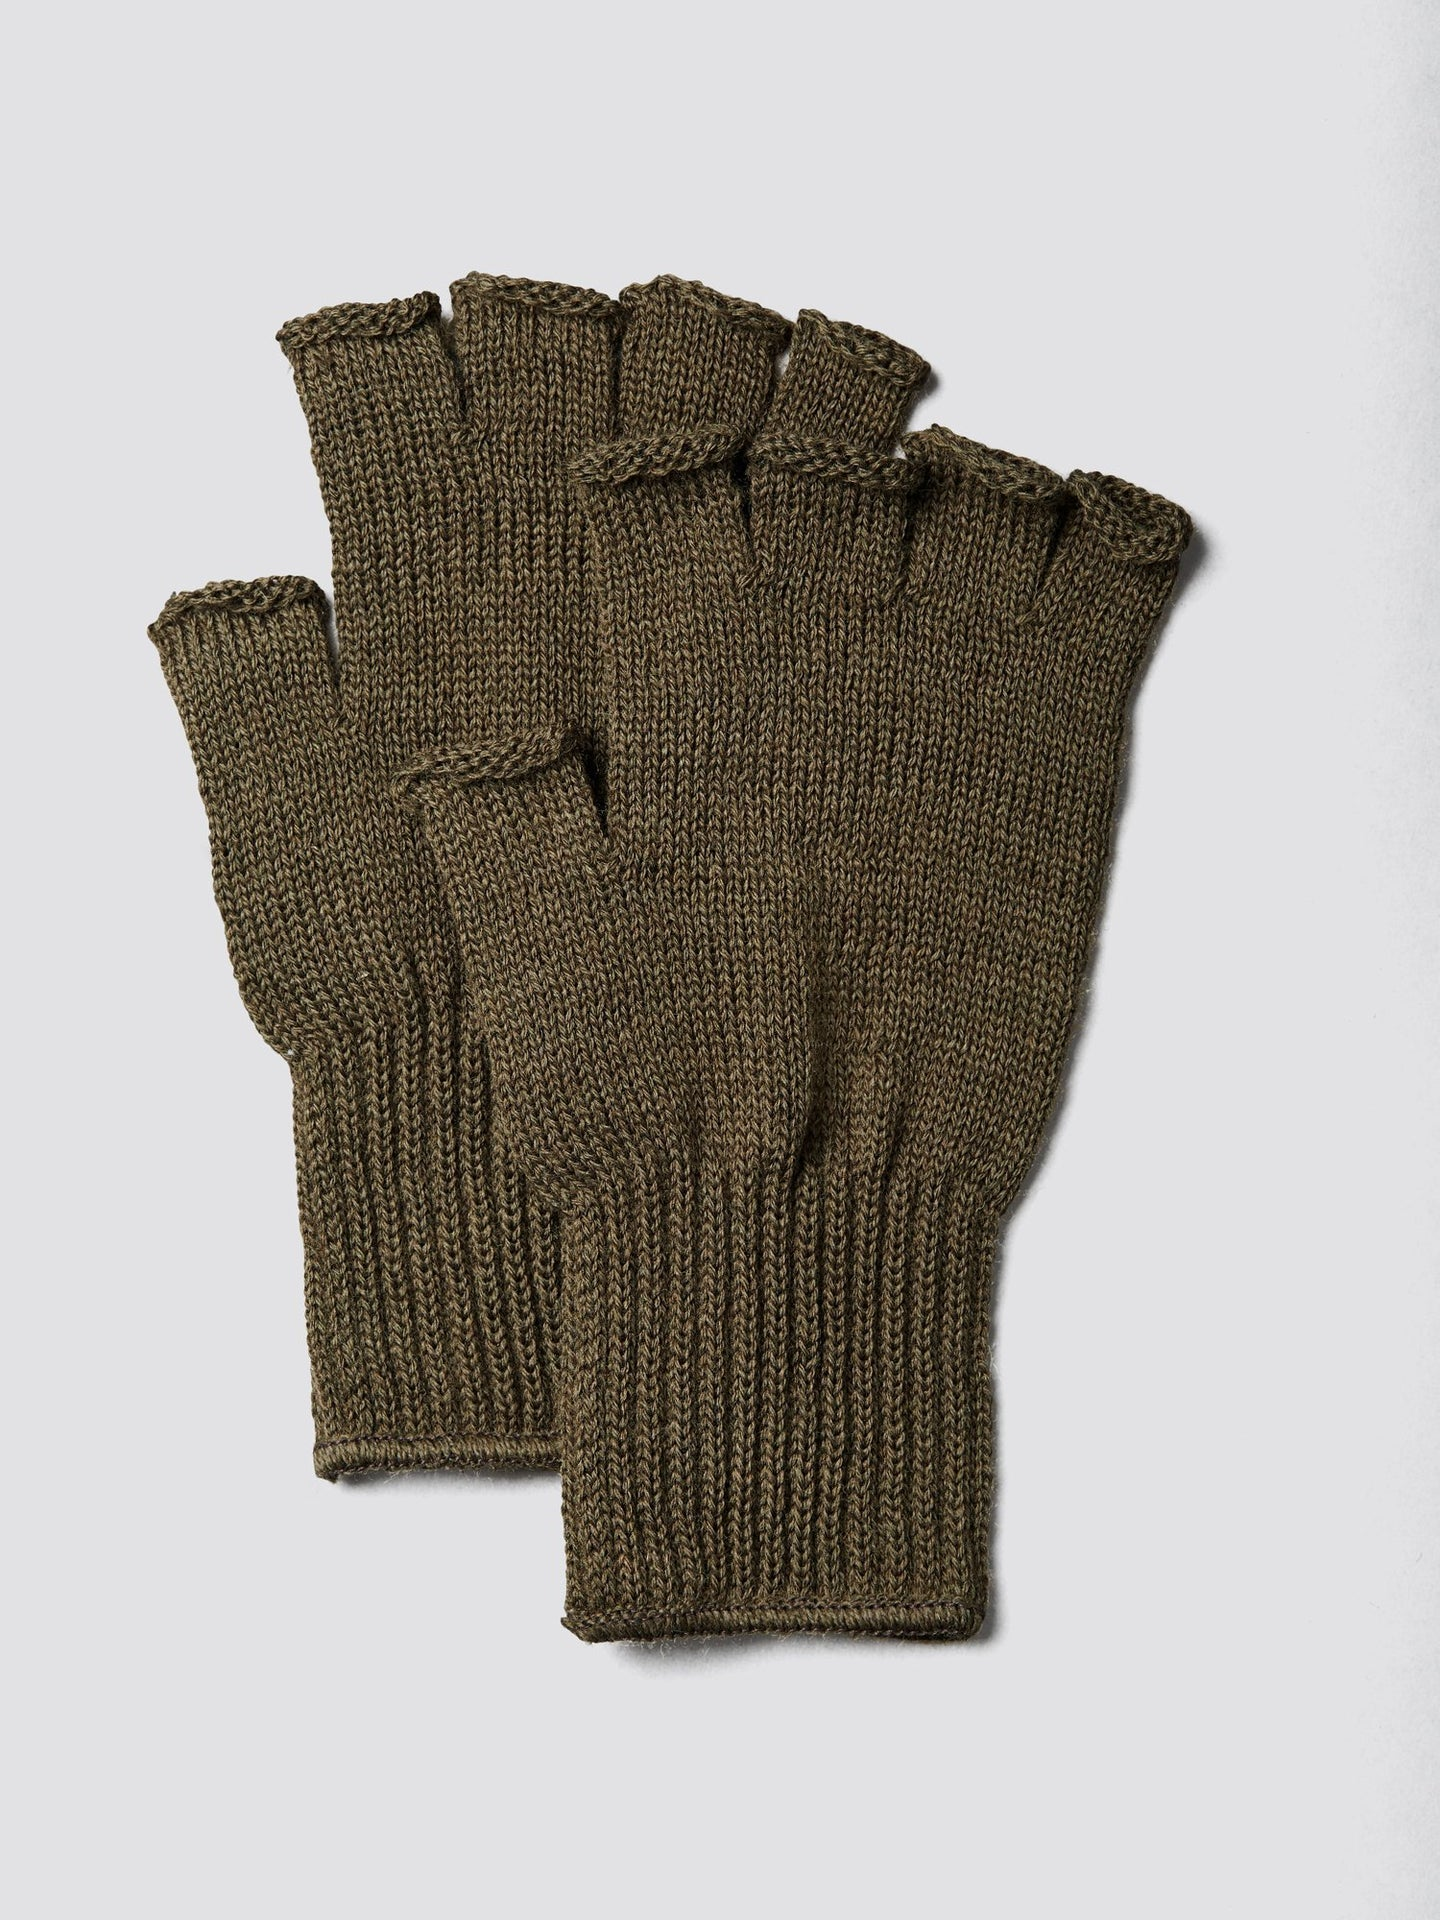 KNIT WOOL FINGERLESS GLOVES ACCESSORY Alpha Industries, Inc. OLIVE DRAB O/S